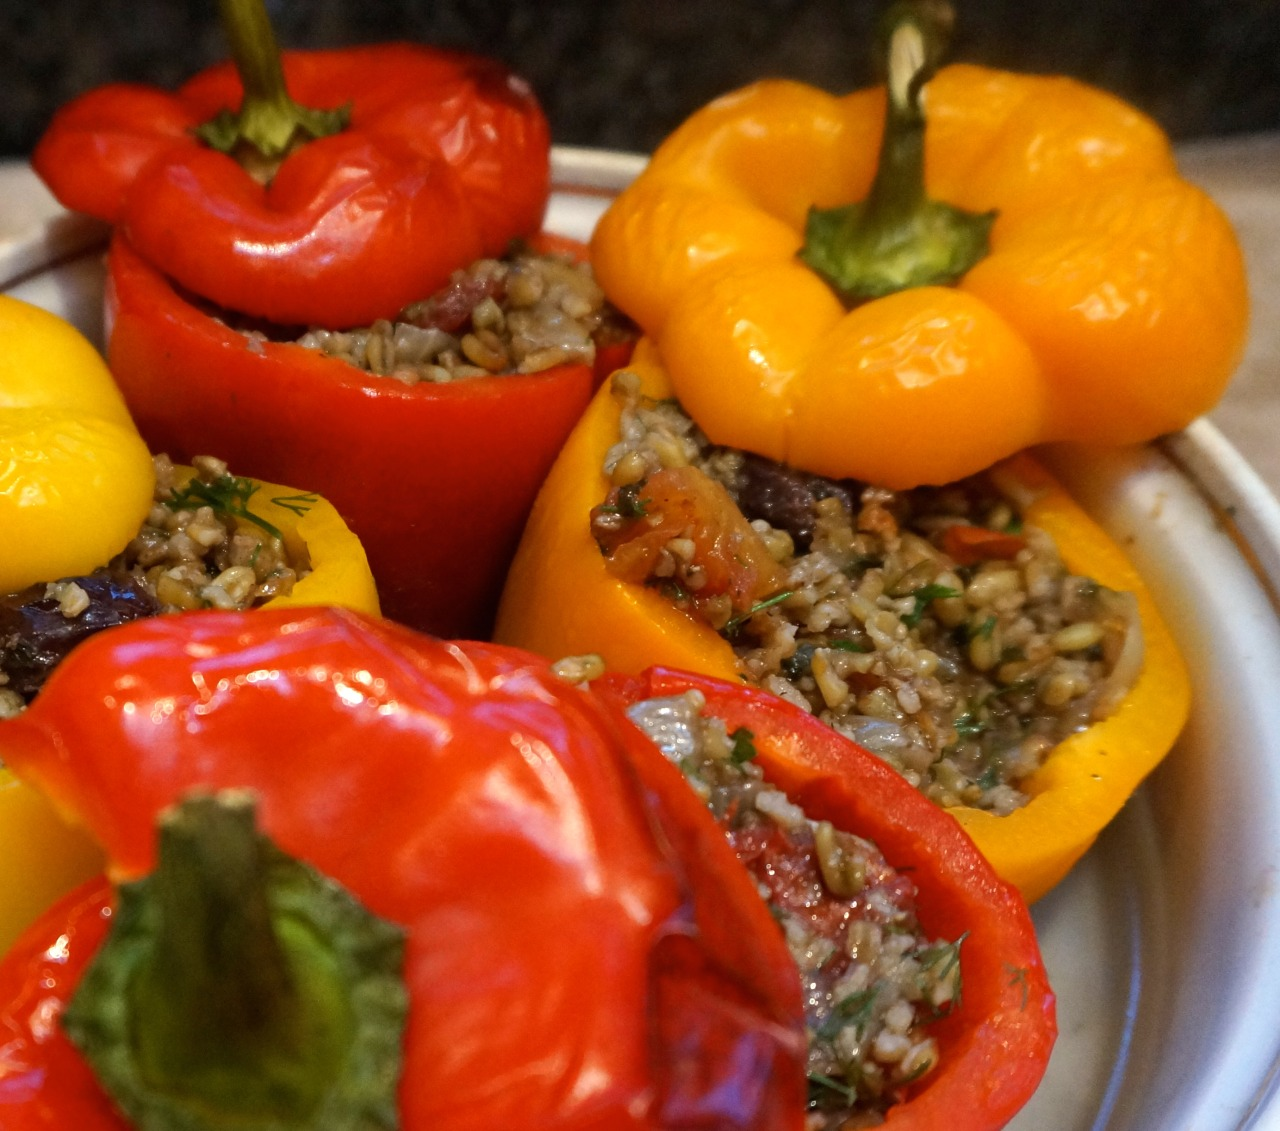 It's been a long long time since I ate stuffed peppers and a long time since I cooked them. Bell peppers and my tummy don't always get along. But I decided to give them another try. My grandmother made a dish something like this one, only she used rice as the base. I switched to freekeh instead because I love this particular grain. It worked beautifully. Looks good, tastes good, perfect for when you need a make-ahead dish to pop in the oven for dinner. Perfect for Sukkot, when stuffed foods are traditional. Easily transportable too. Turkish Stuffed Peppers   8 bell peppers 1 cup cracked freekeh (or use rice) 2 tablespoons currants (or raisins) 5 tablespoons olive oil 2 medium onions, chopped 2 tablespoons pine nuts, optional salt and freshly ground black pepper to taste 1 large tomato, chopped 2 teaspoons sugar 1 teaspoon ground allspice 1-3/4 cups vegetable stock 2 tablespoons chopped fresh parsley 2 tablespoons chopped fresh dill 1 tablespoon chopped fresh mint 2 tablespoons lemon juice   Place the peppers in a deep bowl and pour boiling water over them. Weight them down to keep them under the water. Let rest for 5 minutes. Drain and repeat the process with cold water. Cut a lid from the top of the peppers, but reserve the lids. Scoop out and discard the seeds and membranes. Set the peppers aside. Place the freekeh and currants in a bowl and pour boiling water over them. Let rest for 30 minutes. Drain. Heat the olive oil in a sauté pan over medium heat. Add the onions and pignoli nuts, if used, and cook, stirring occasionally, for 4-5 minutes or until the onion has softened and is slightly golden. Add the freekeh and currants and some salt and pepper to taste. Cook for another 1-2 minutes, stirring occasionally. Add the tomato, sugar and allspice and cook for another minute, stirring occasionally. Add the stock, bring to a boil, cover the pan and lower the heat. Cook for about 40 minutes or until the freekeh is soft and all the liquid has been absorbed. Remove the pan from the heat. Stir in the parsley, dill, mint and lemon juice. Let cool. Use to fill the peppers. Place lids on top. (You may prepare to this point and cook later). Preheat the oven to 350 degrees. Place the peppers in a baking dish. Add 2 cups of water to the dish. Bake the peppers for 40 minutes. Let cool slightly before serving (warm or at room temperature).   Makes 8 servings